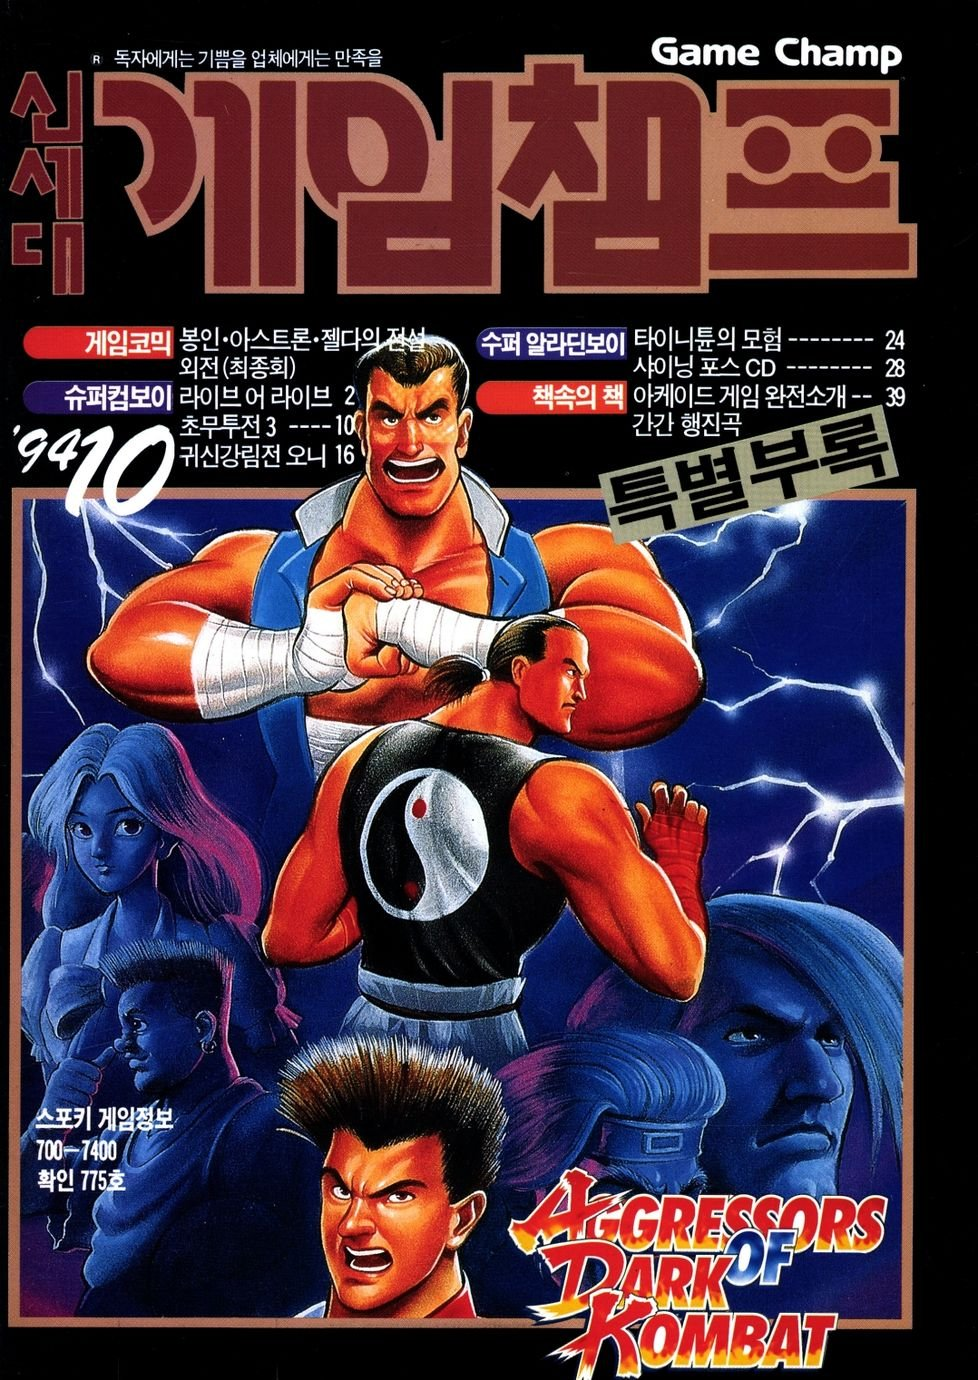 Game Champ Issue 023 supplement (October 1994)